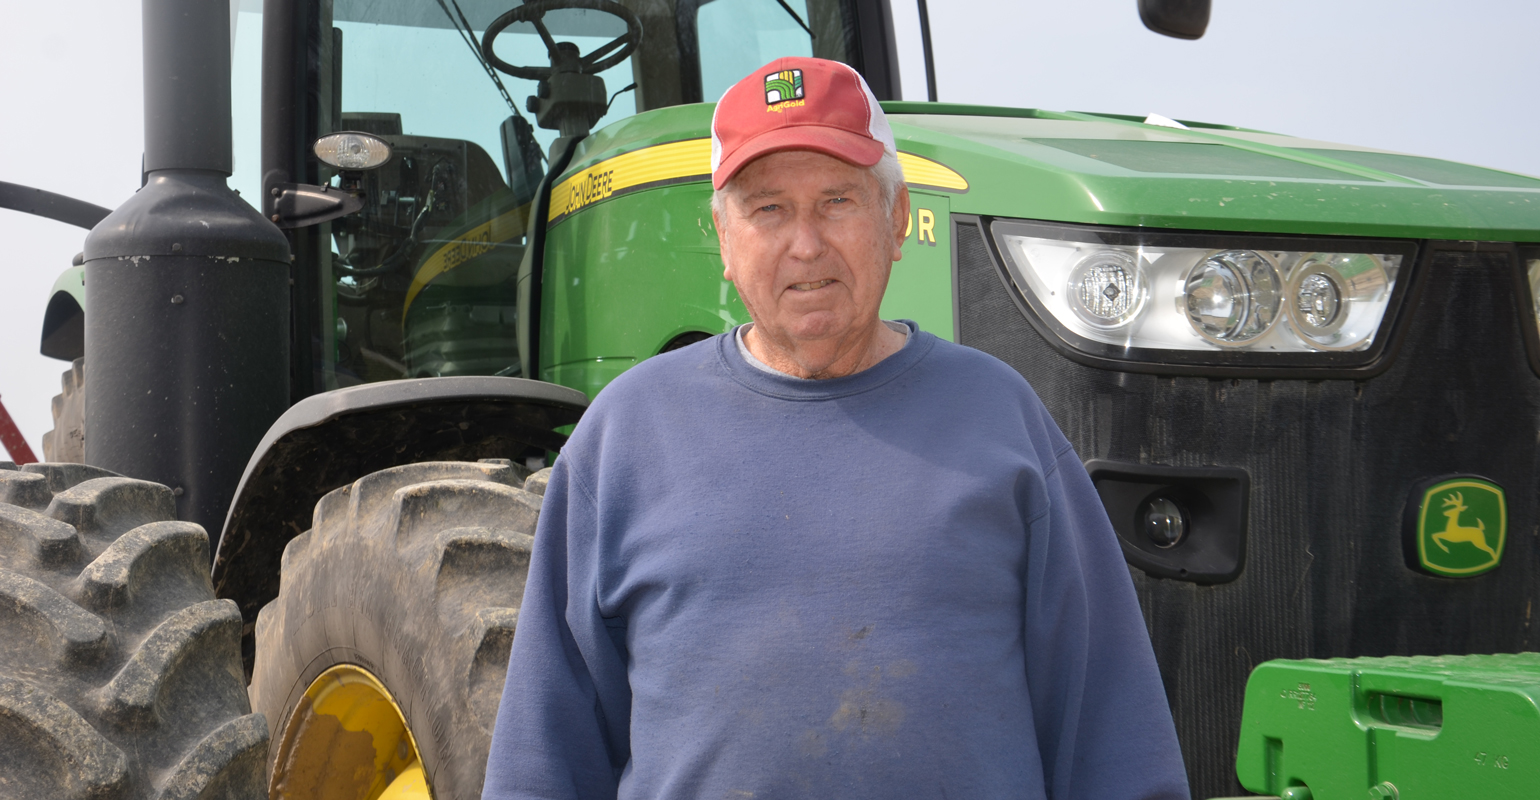 Master Farmers pinpoint changes during their careers